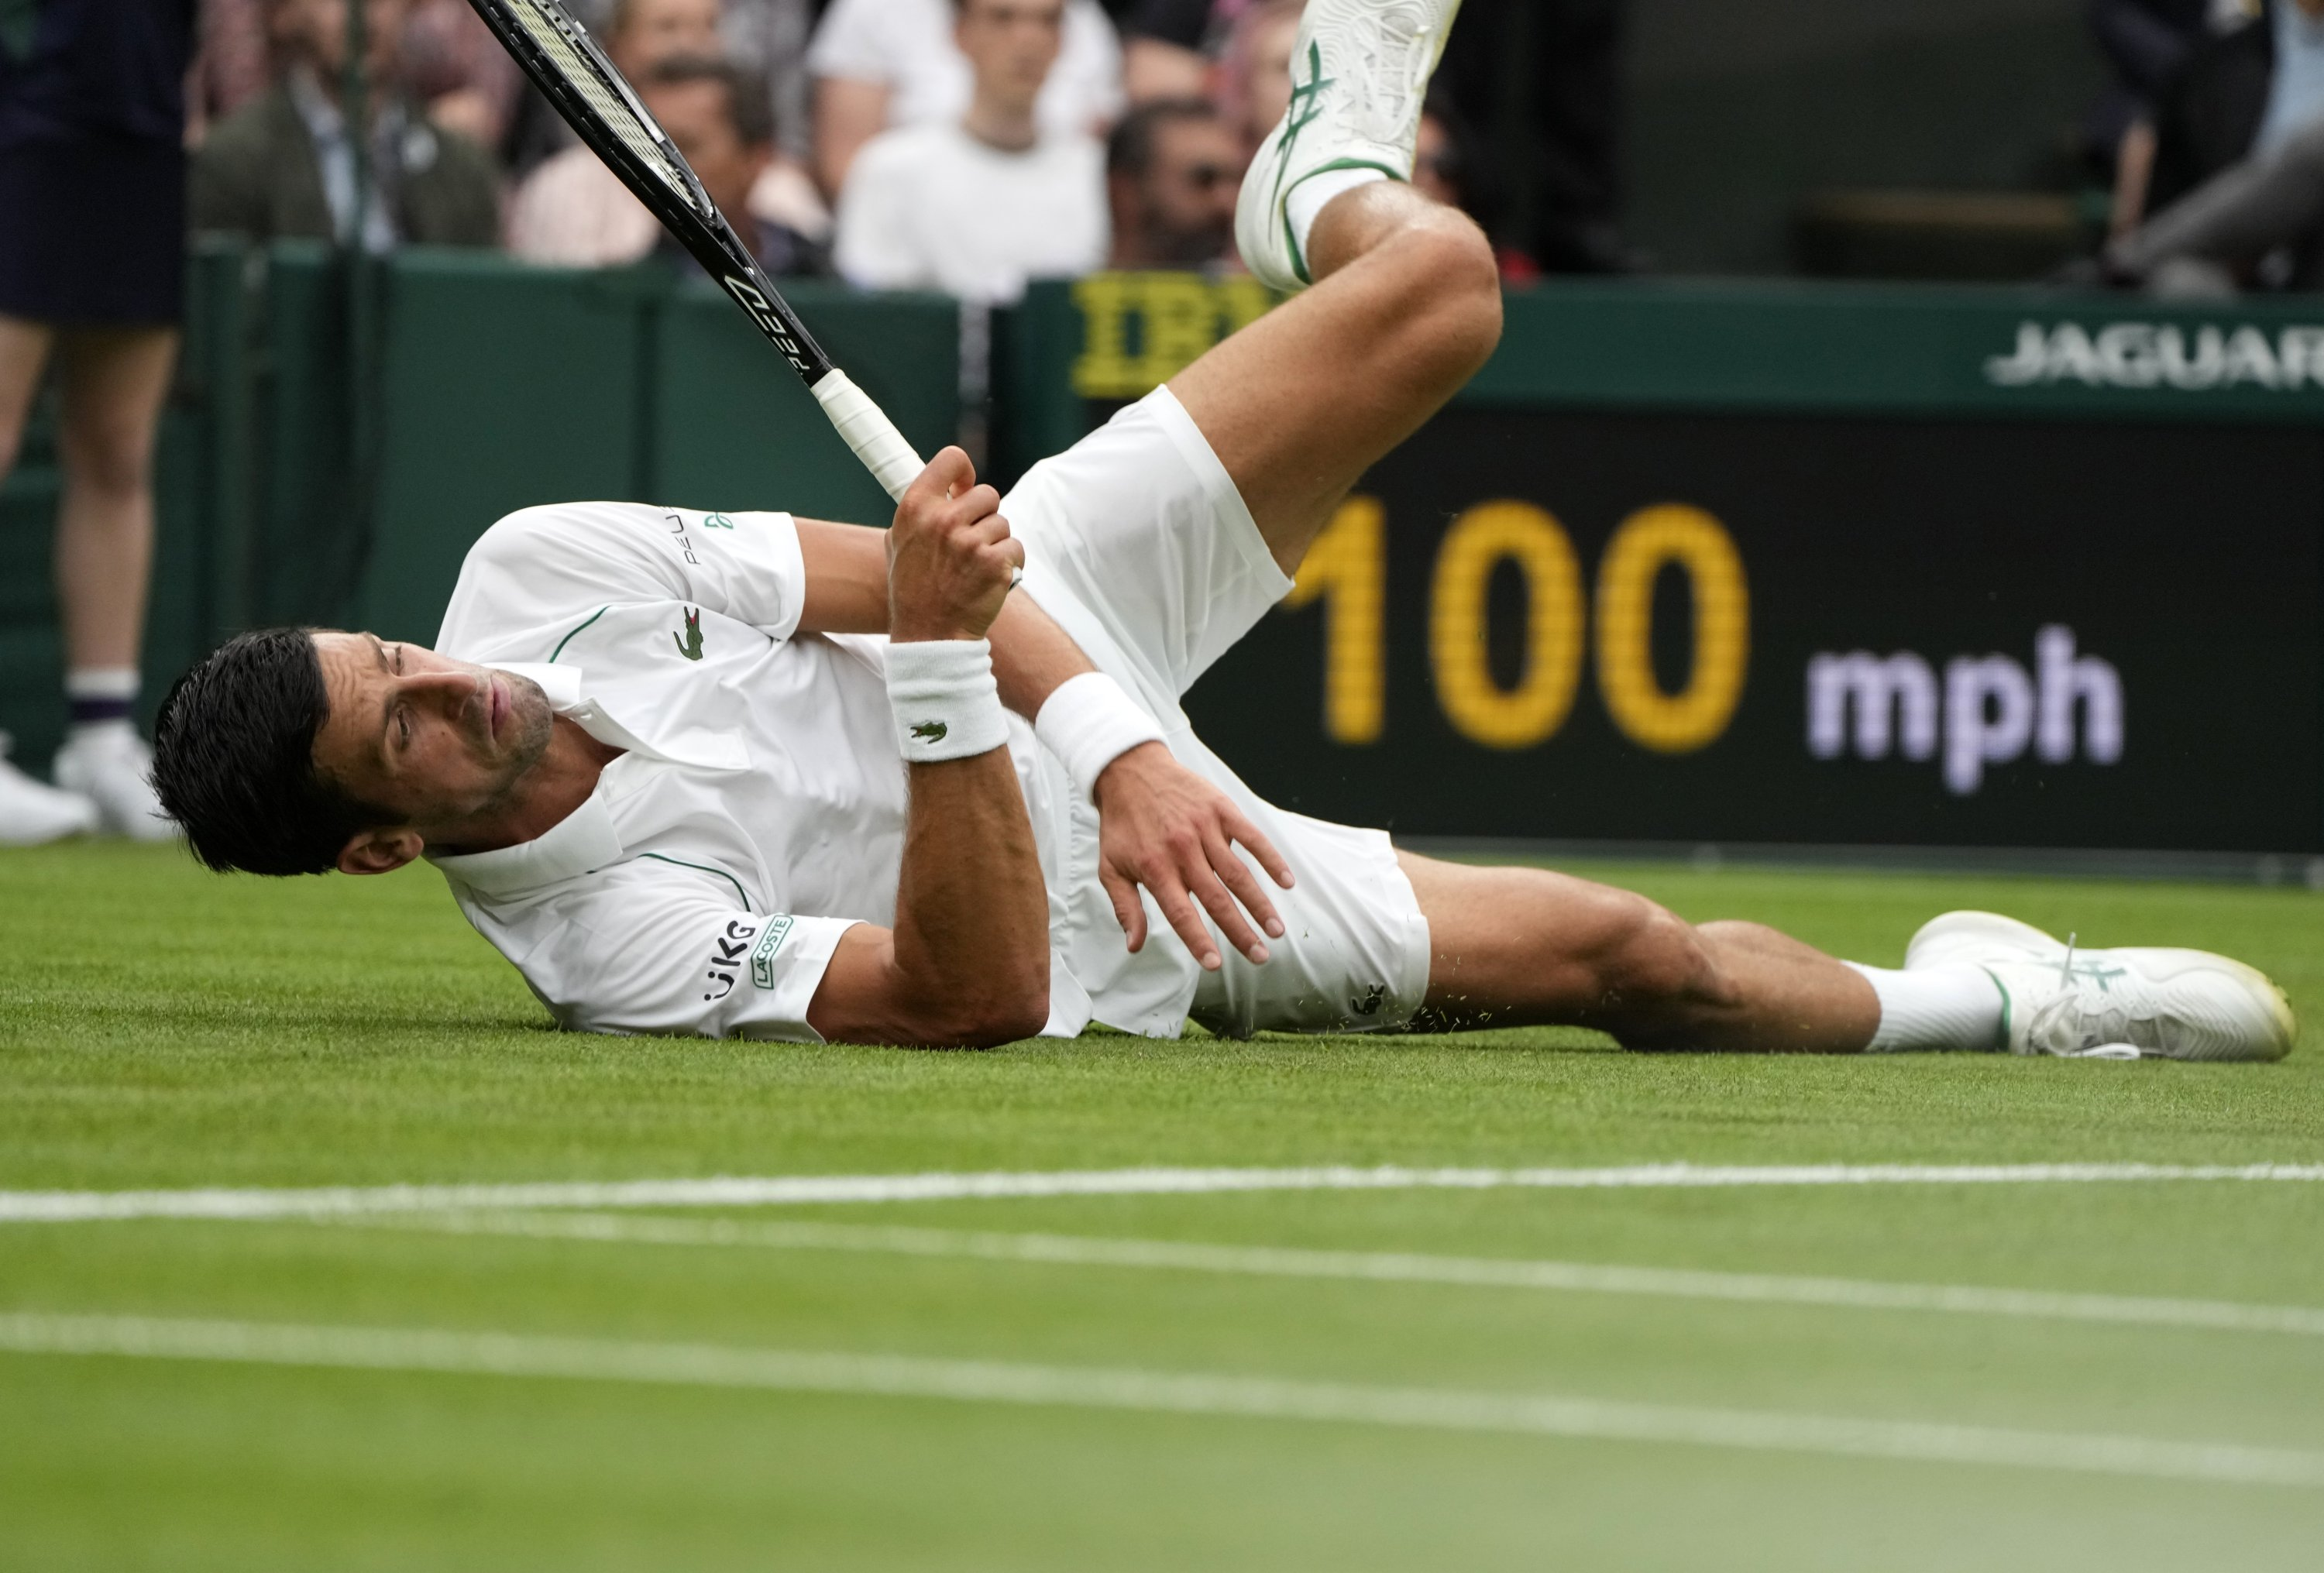 Serbia's Novak Djokovic slips on the grass during the men's singles match against Britain's Jack Draper on day one of the Wimbledon Tennis Championships in London, June 28, 2021. (AP Photo)